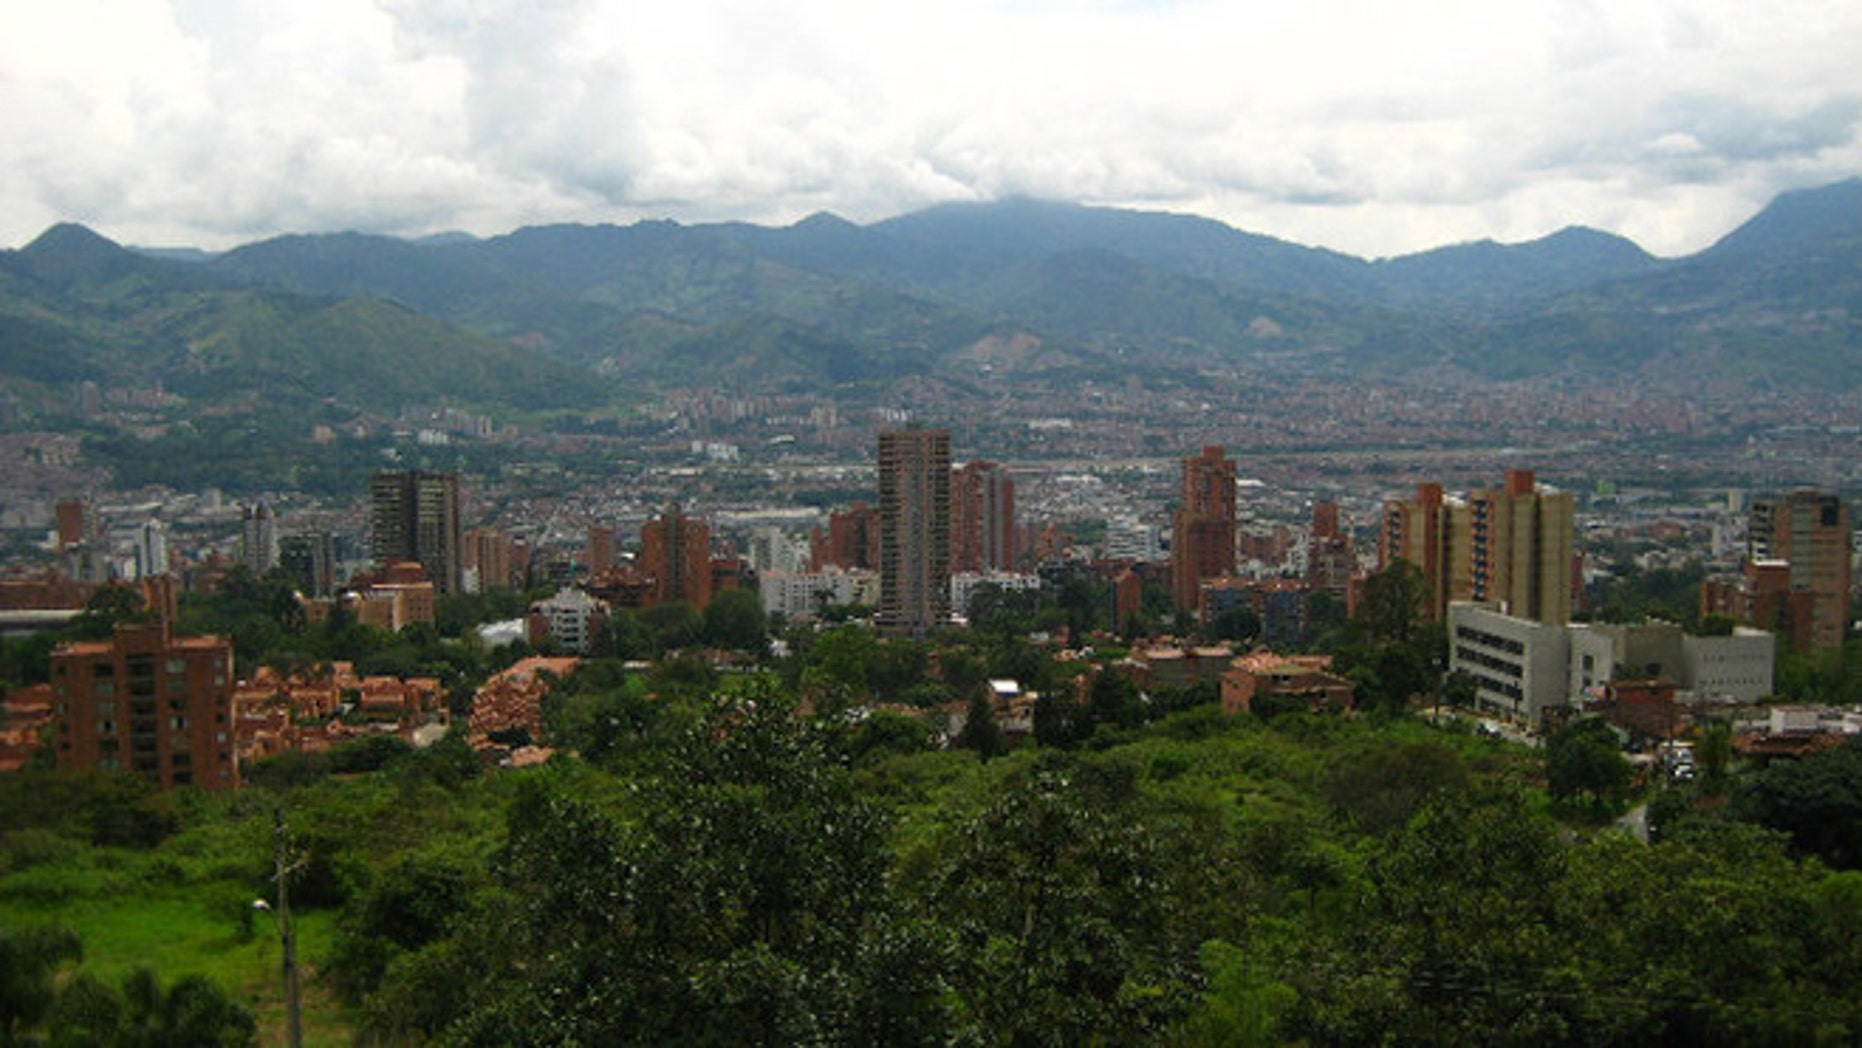 A look at the city of Medellín, Colombia.